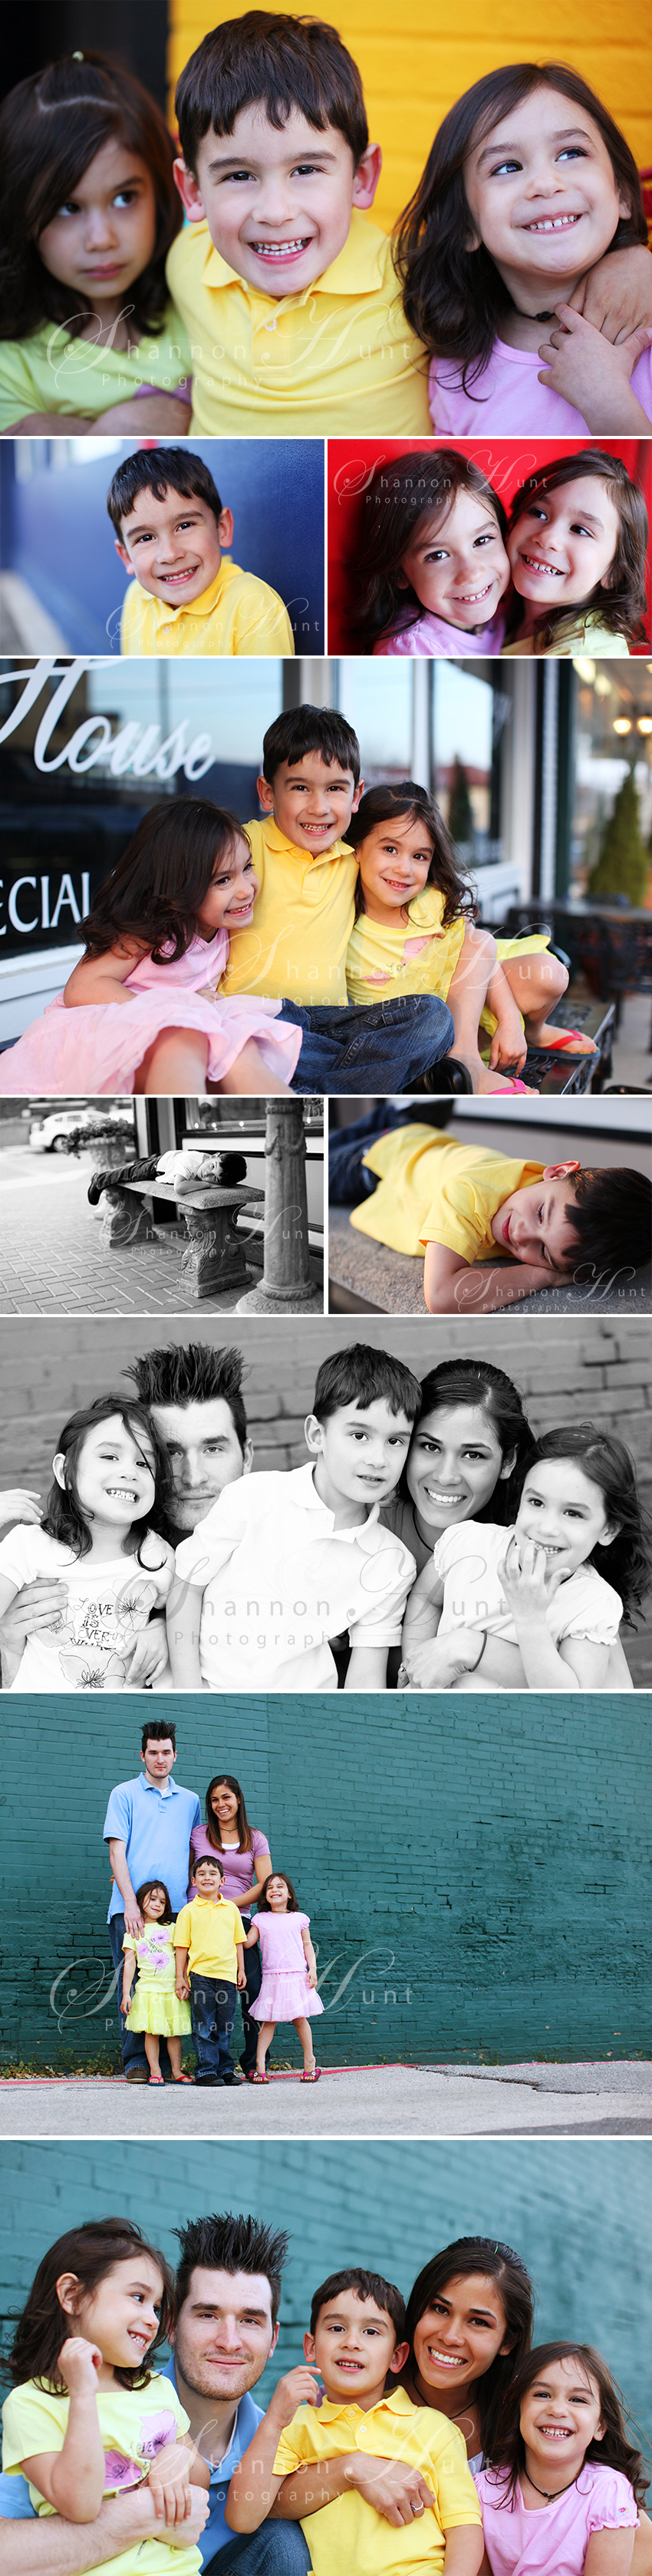 family downtown by McKinney Texas family portrait photographer